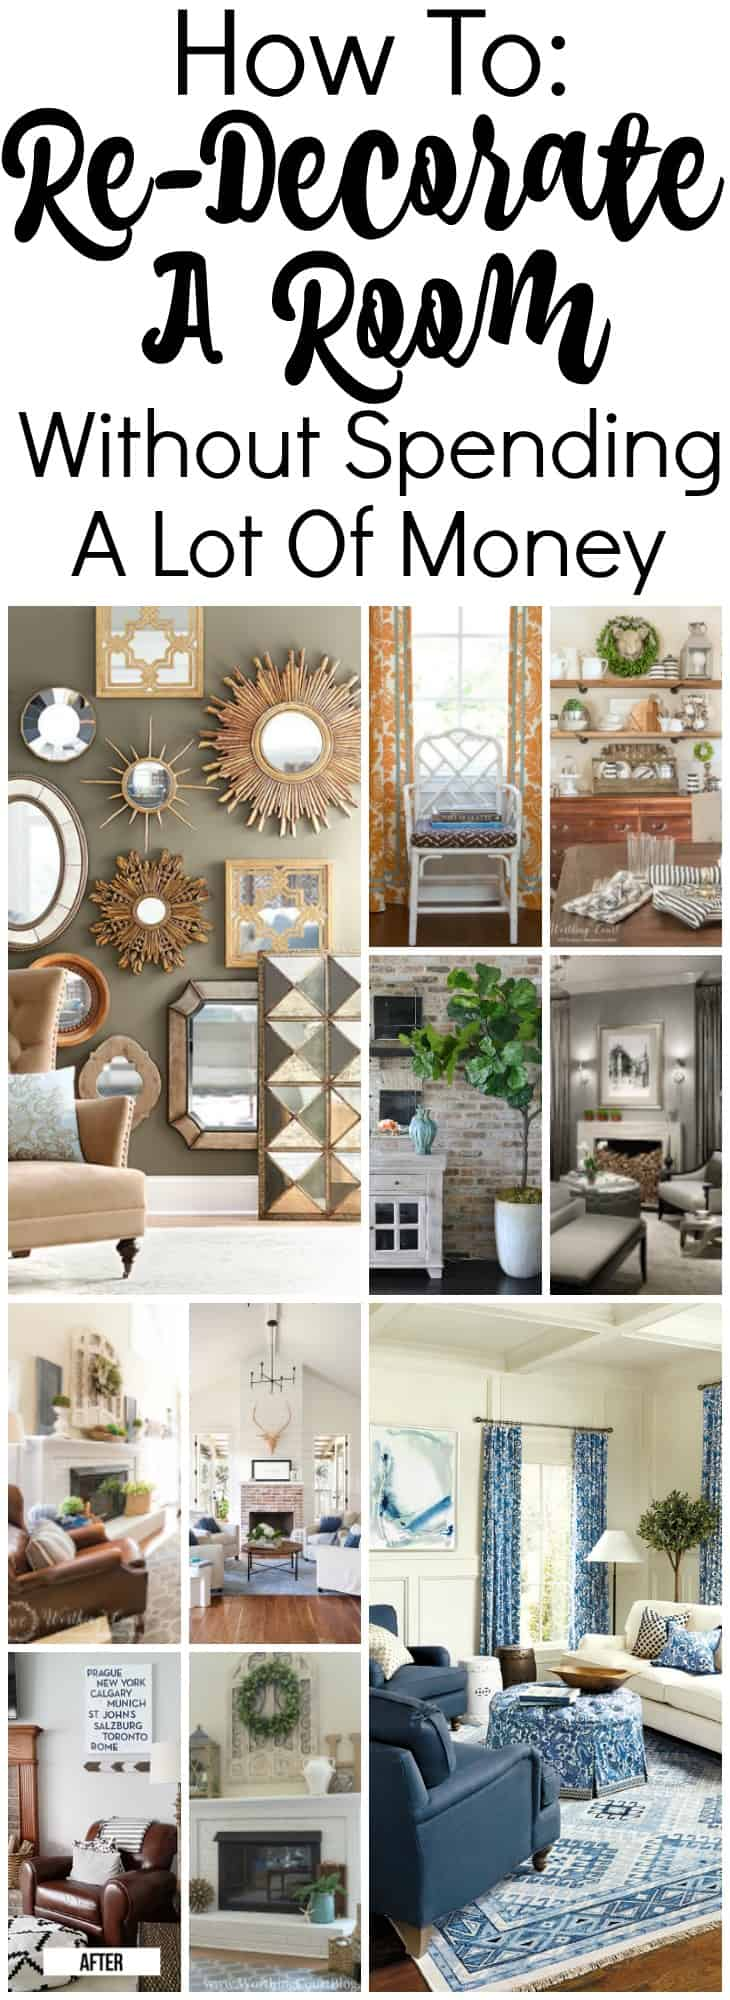 Loads of tips and ideas for how to redecorate a room on a budget